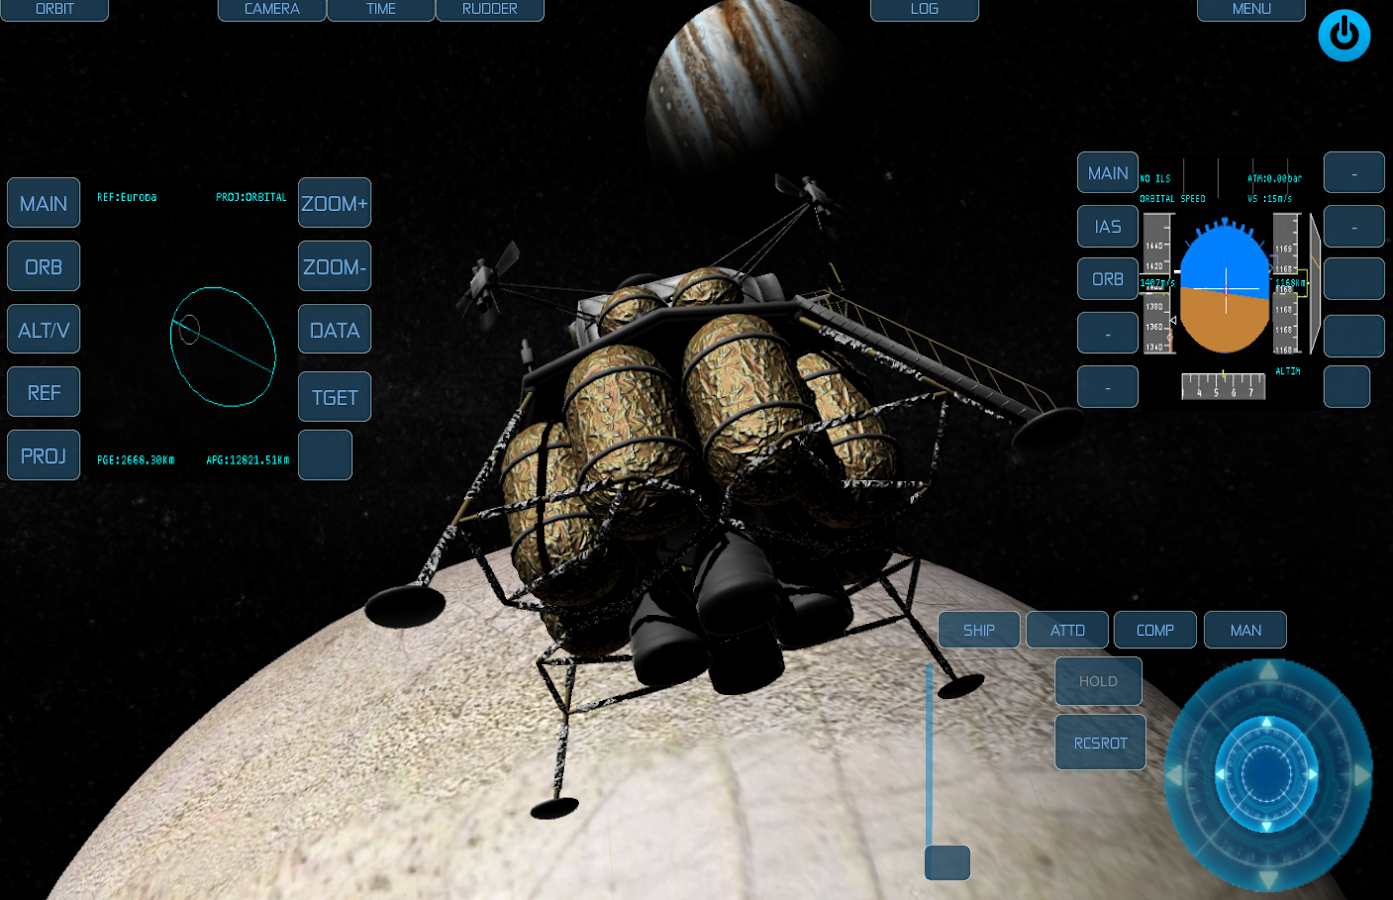 orbiter space flight simulator how to play